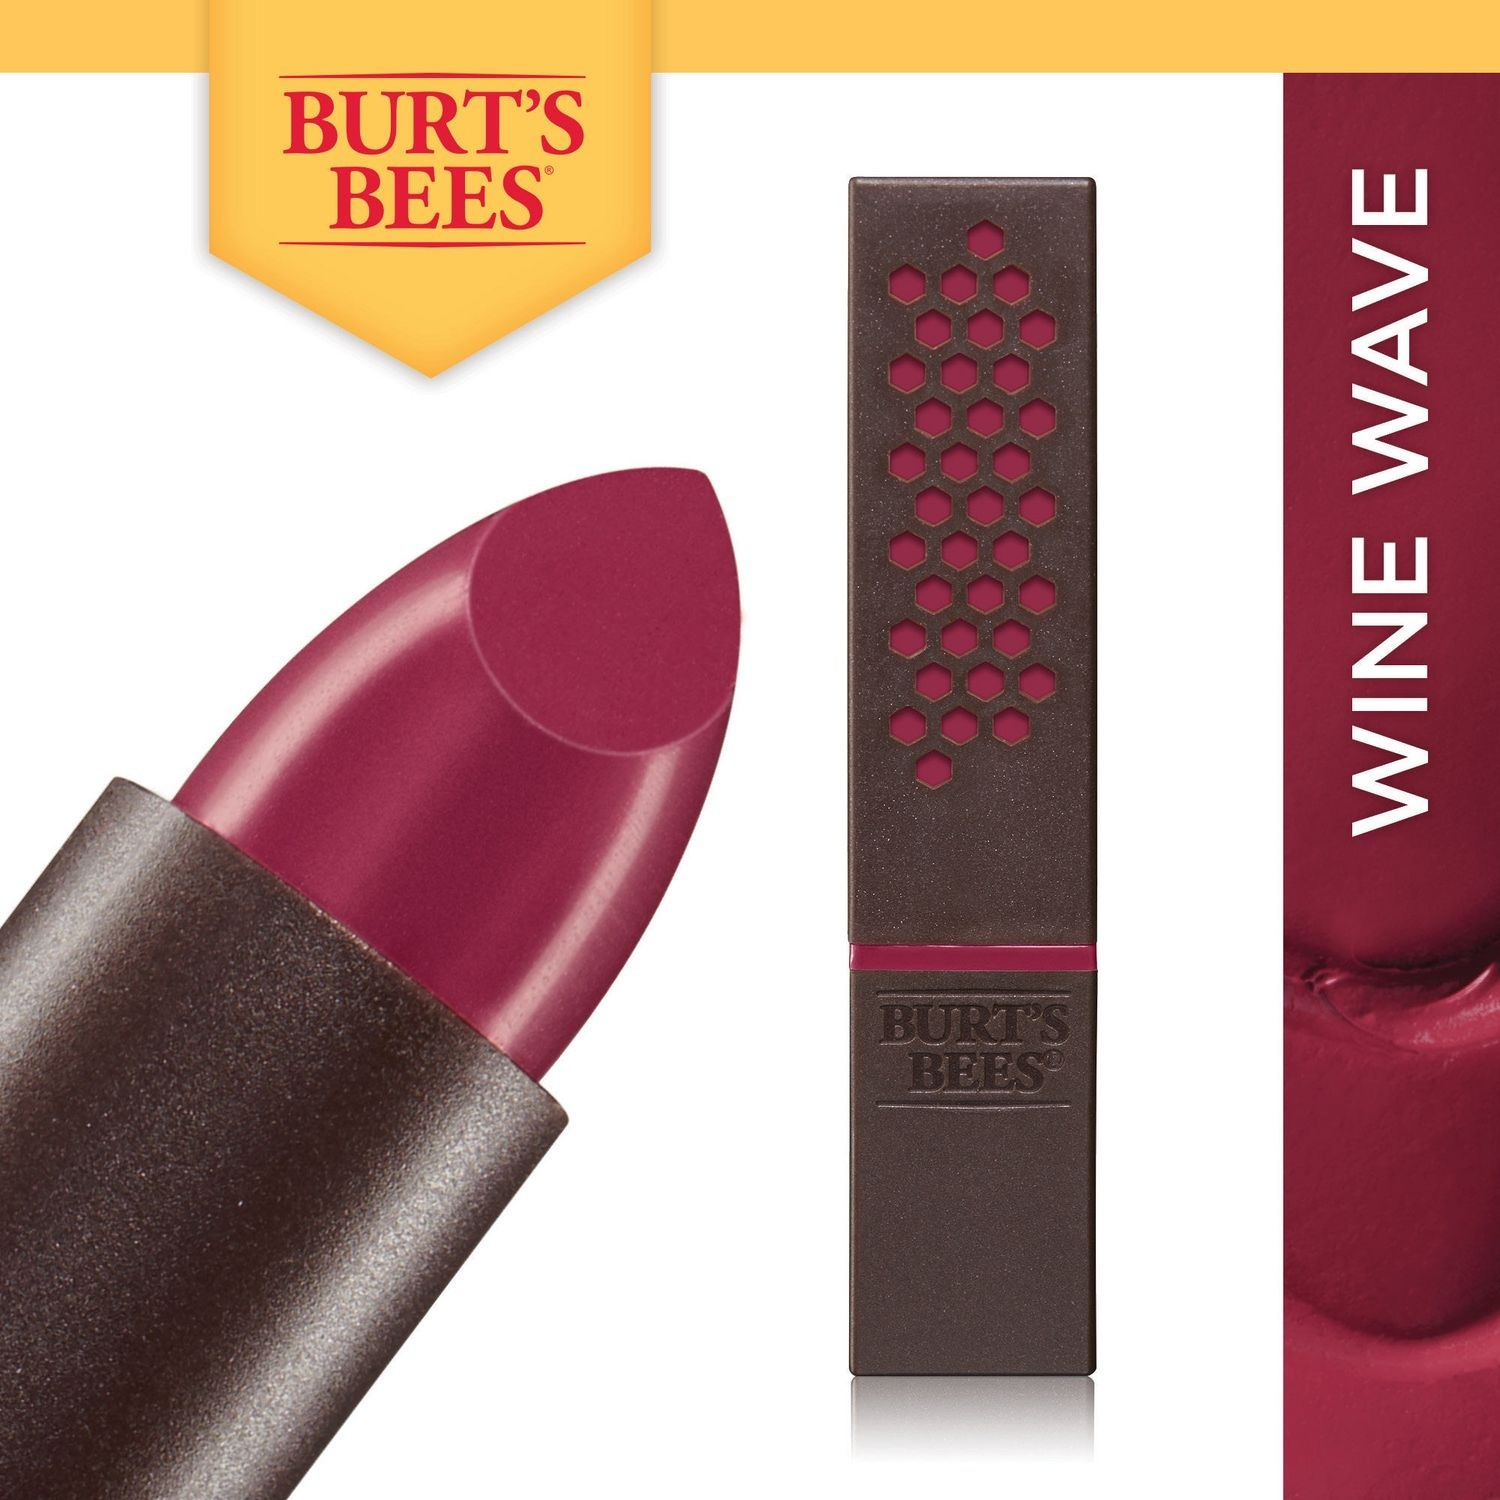 burt's bees wine wave.jpg